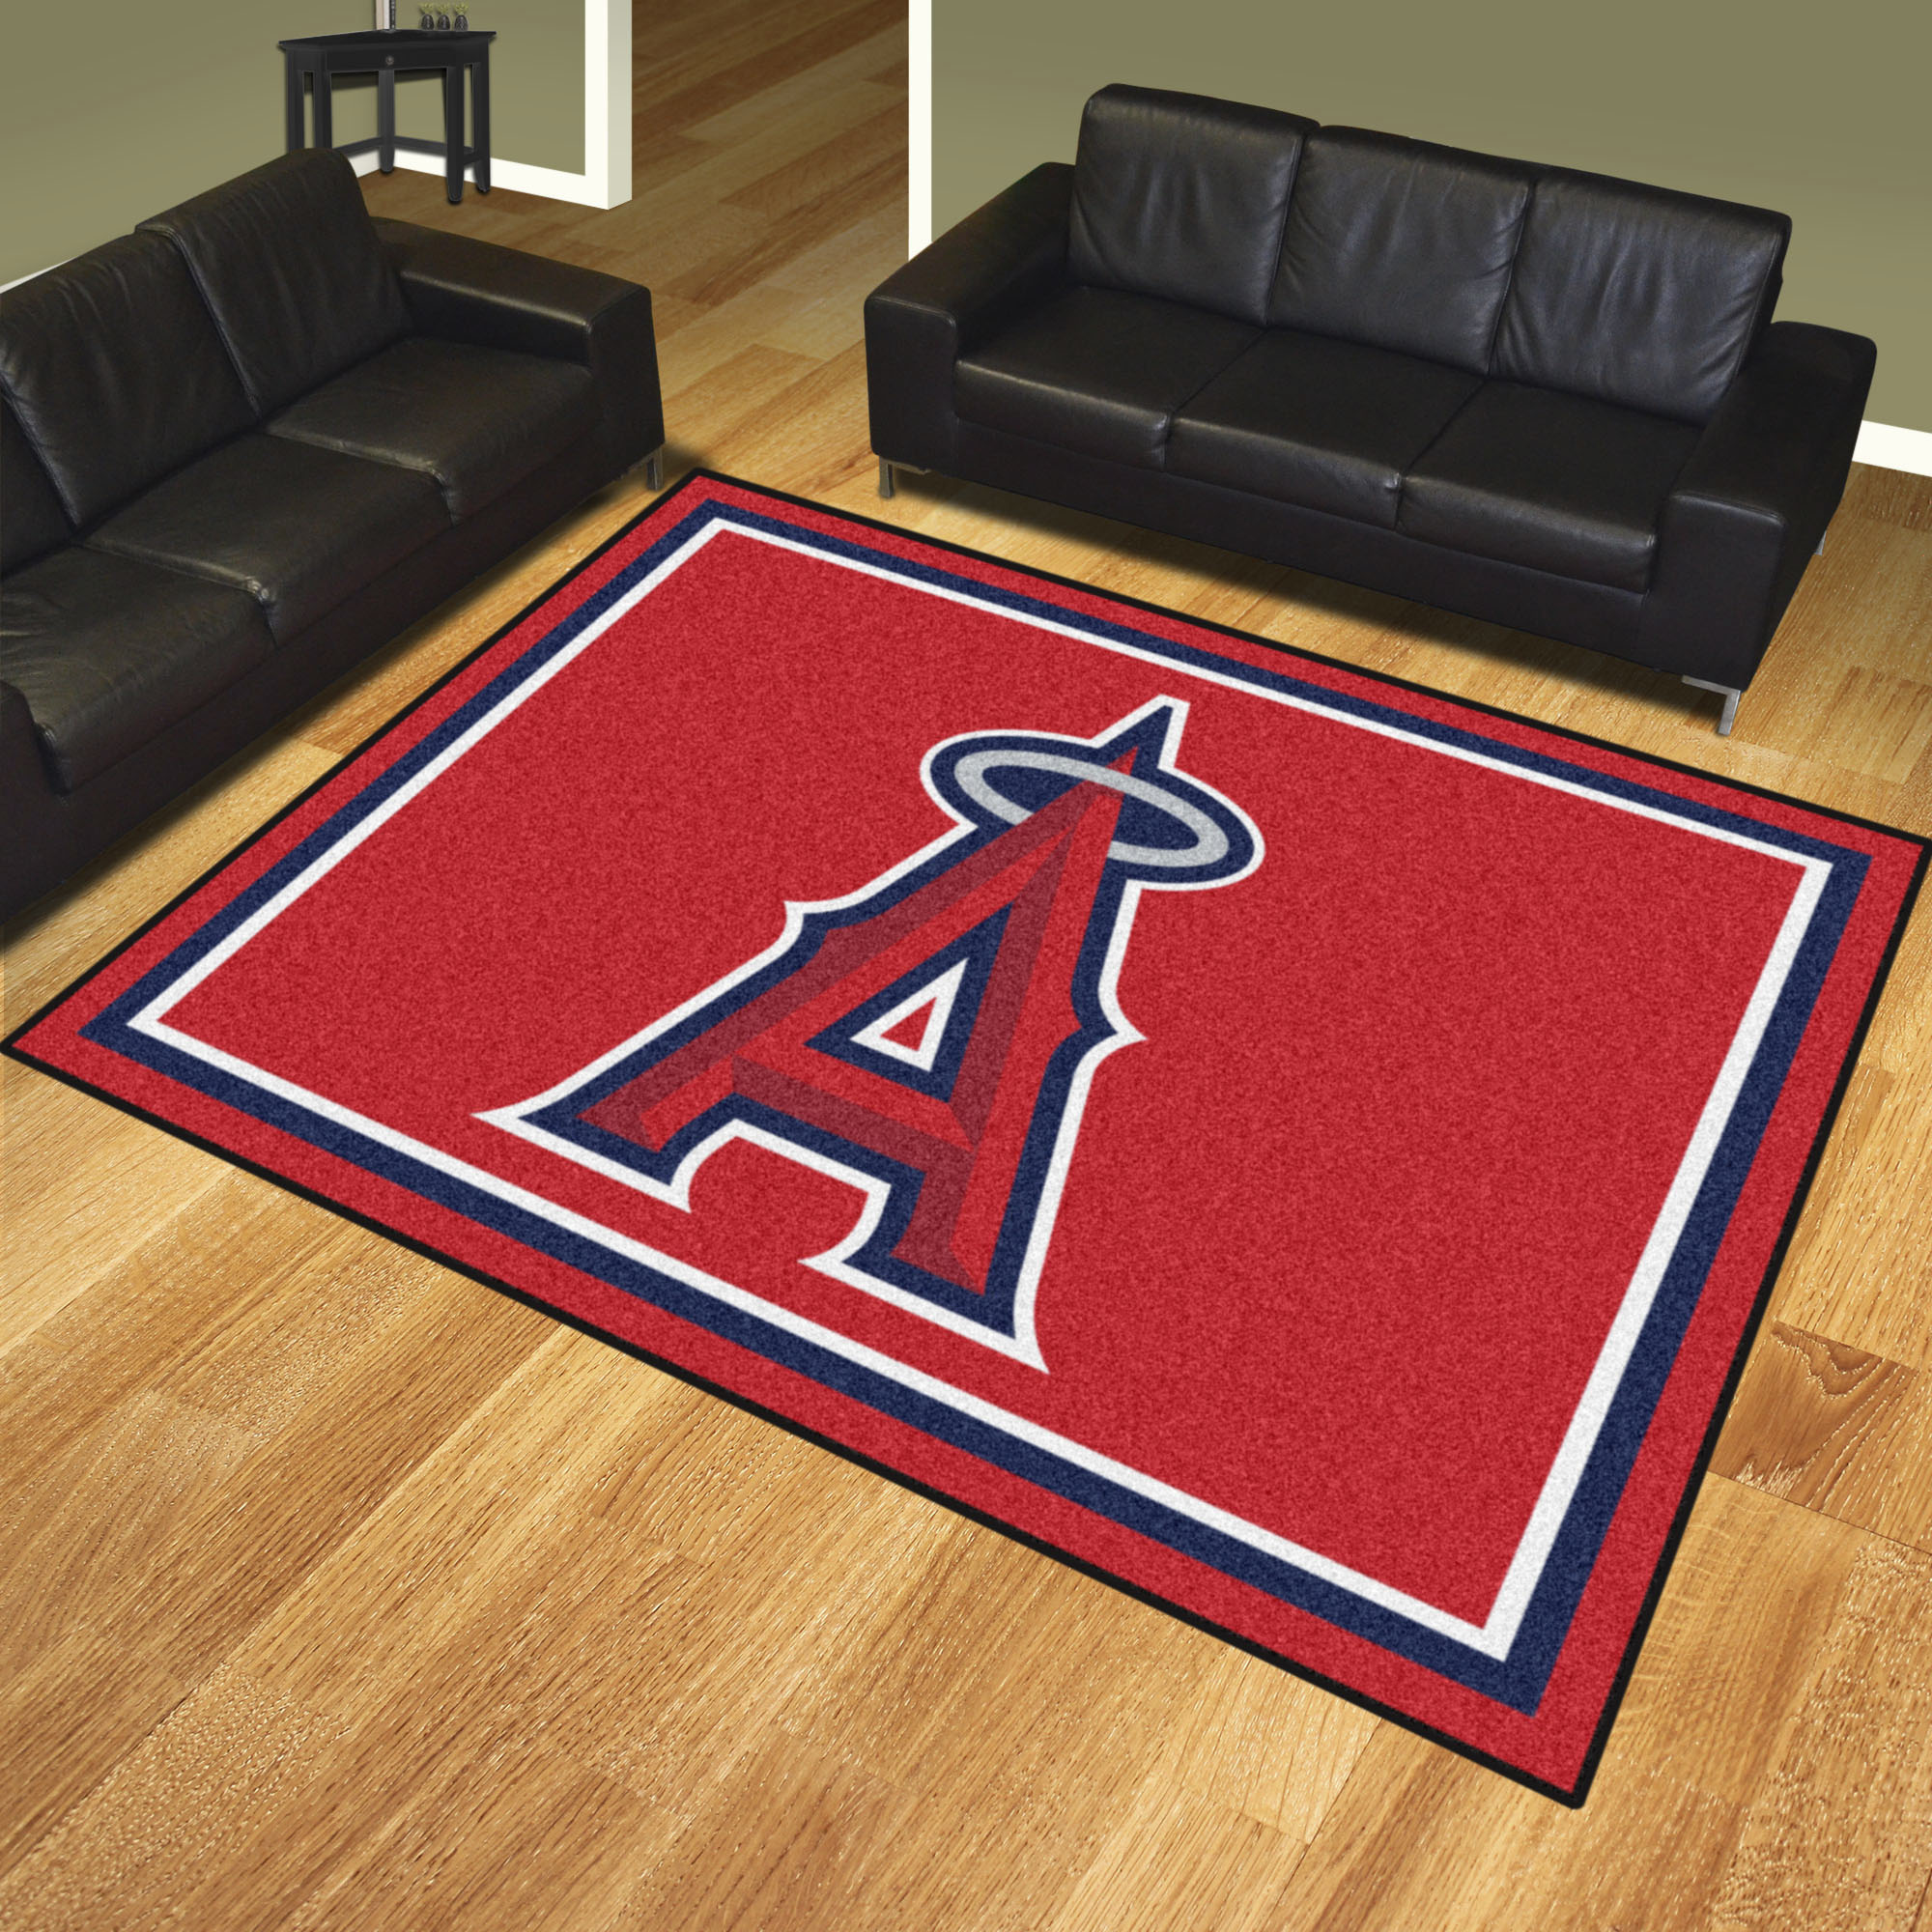 Los Angeles Angels Ultra Plush 8x10 Area Rug